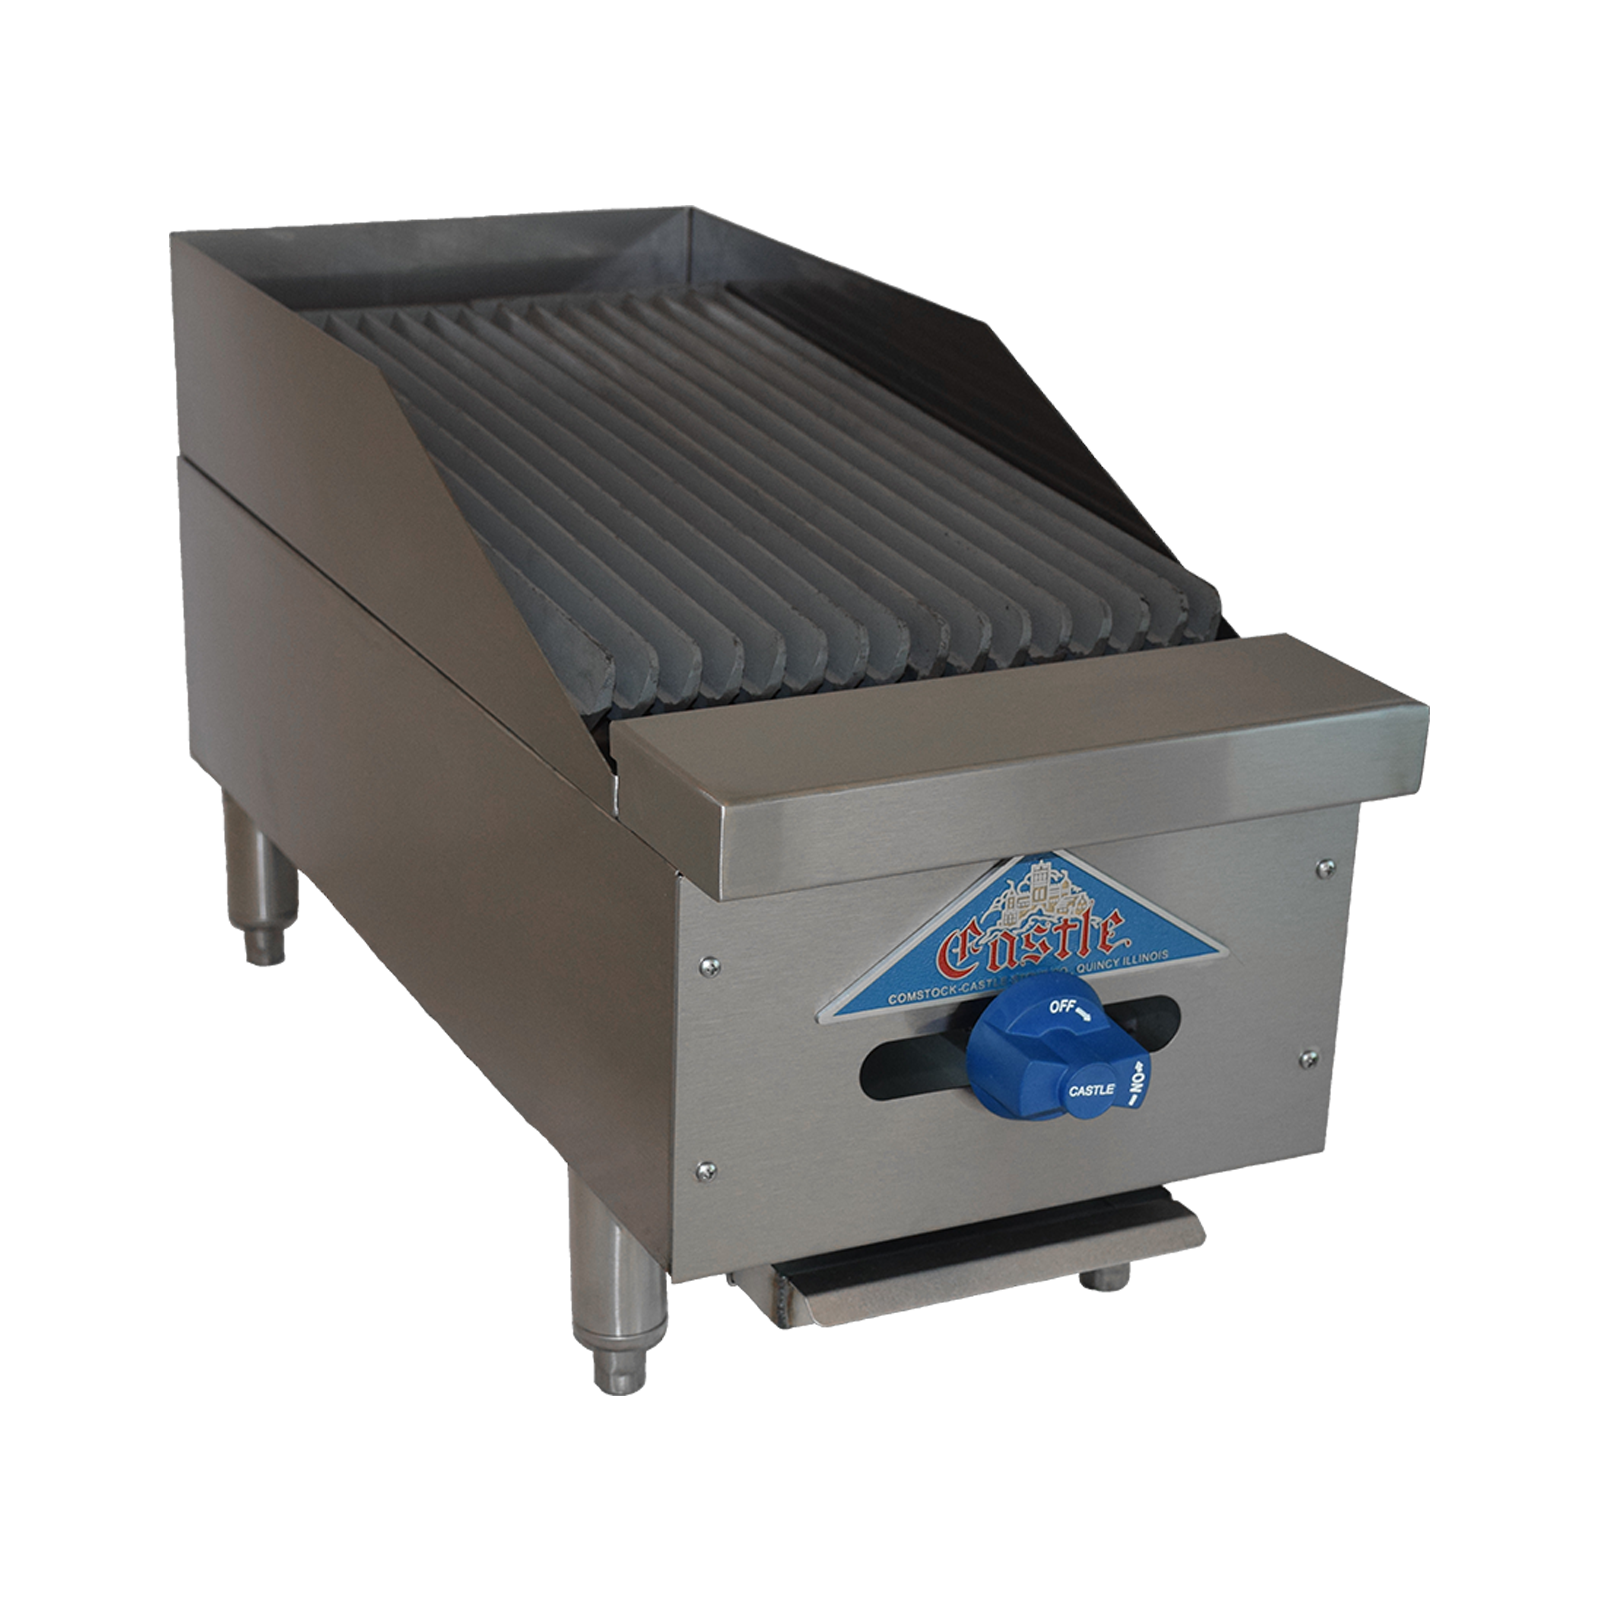 Comstock-Castle FHP12-1RB charbroiler, gas, countertop